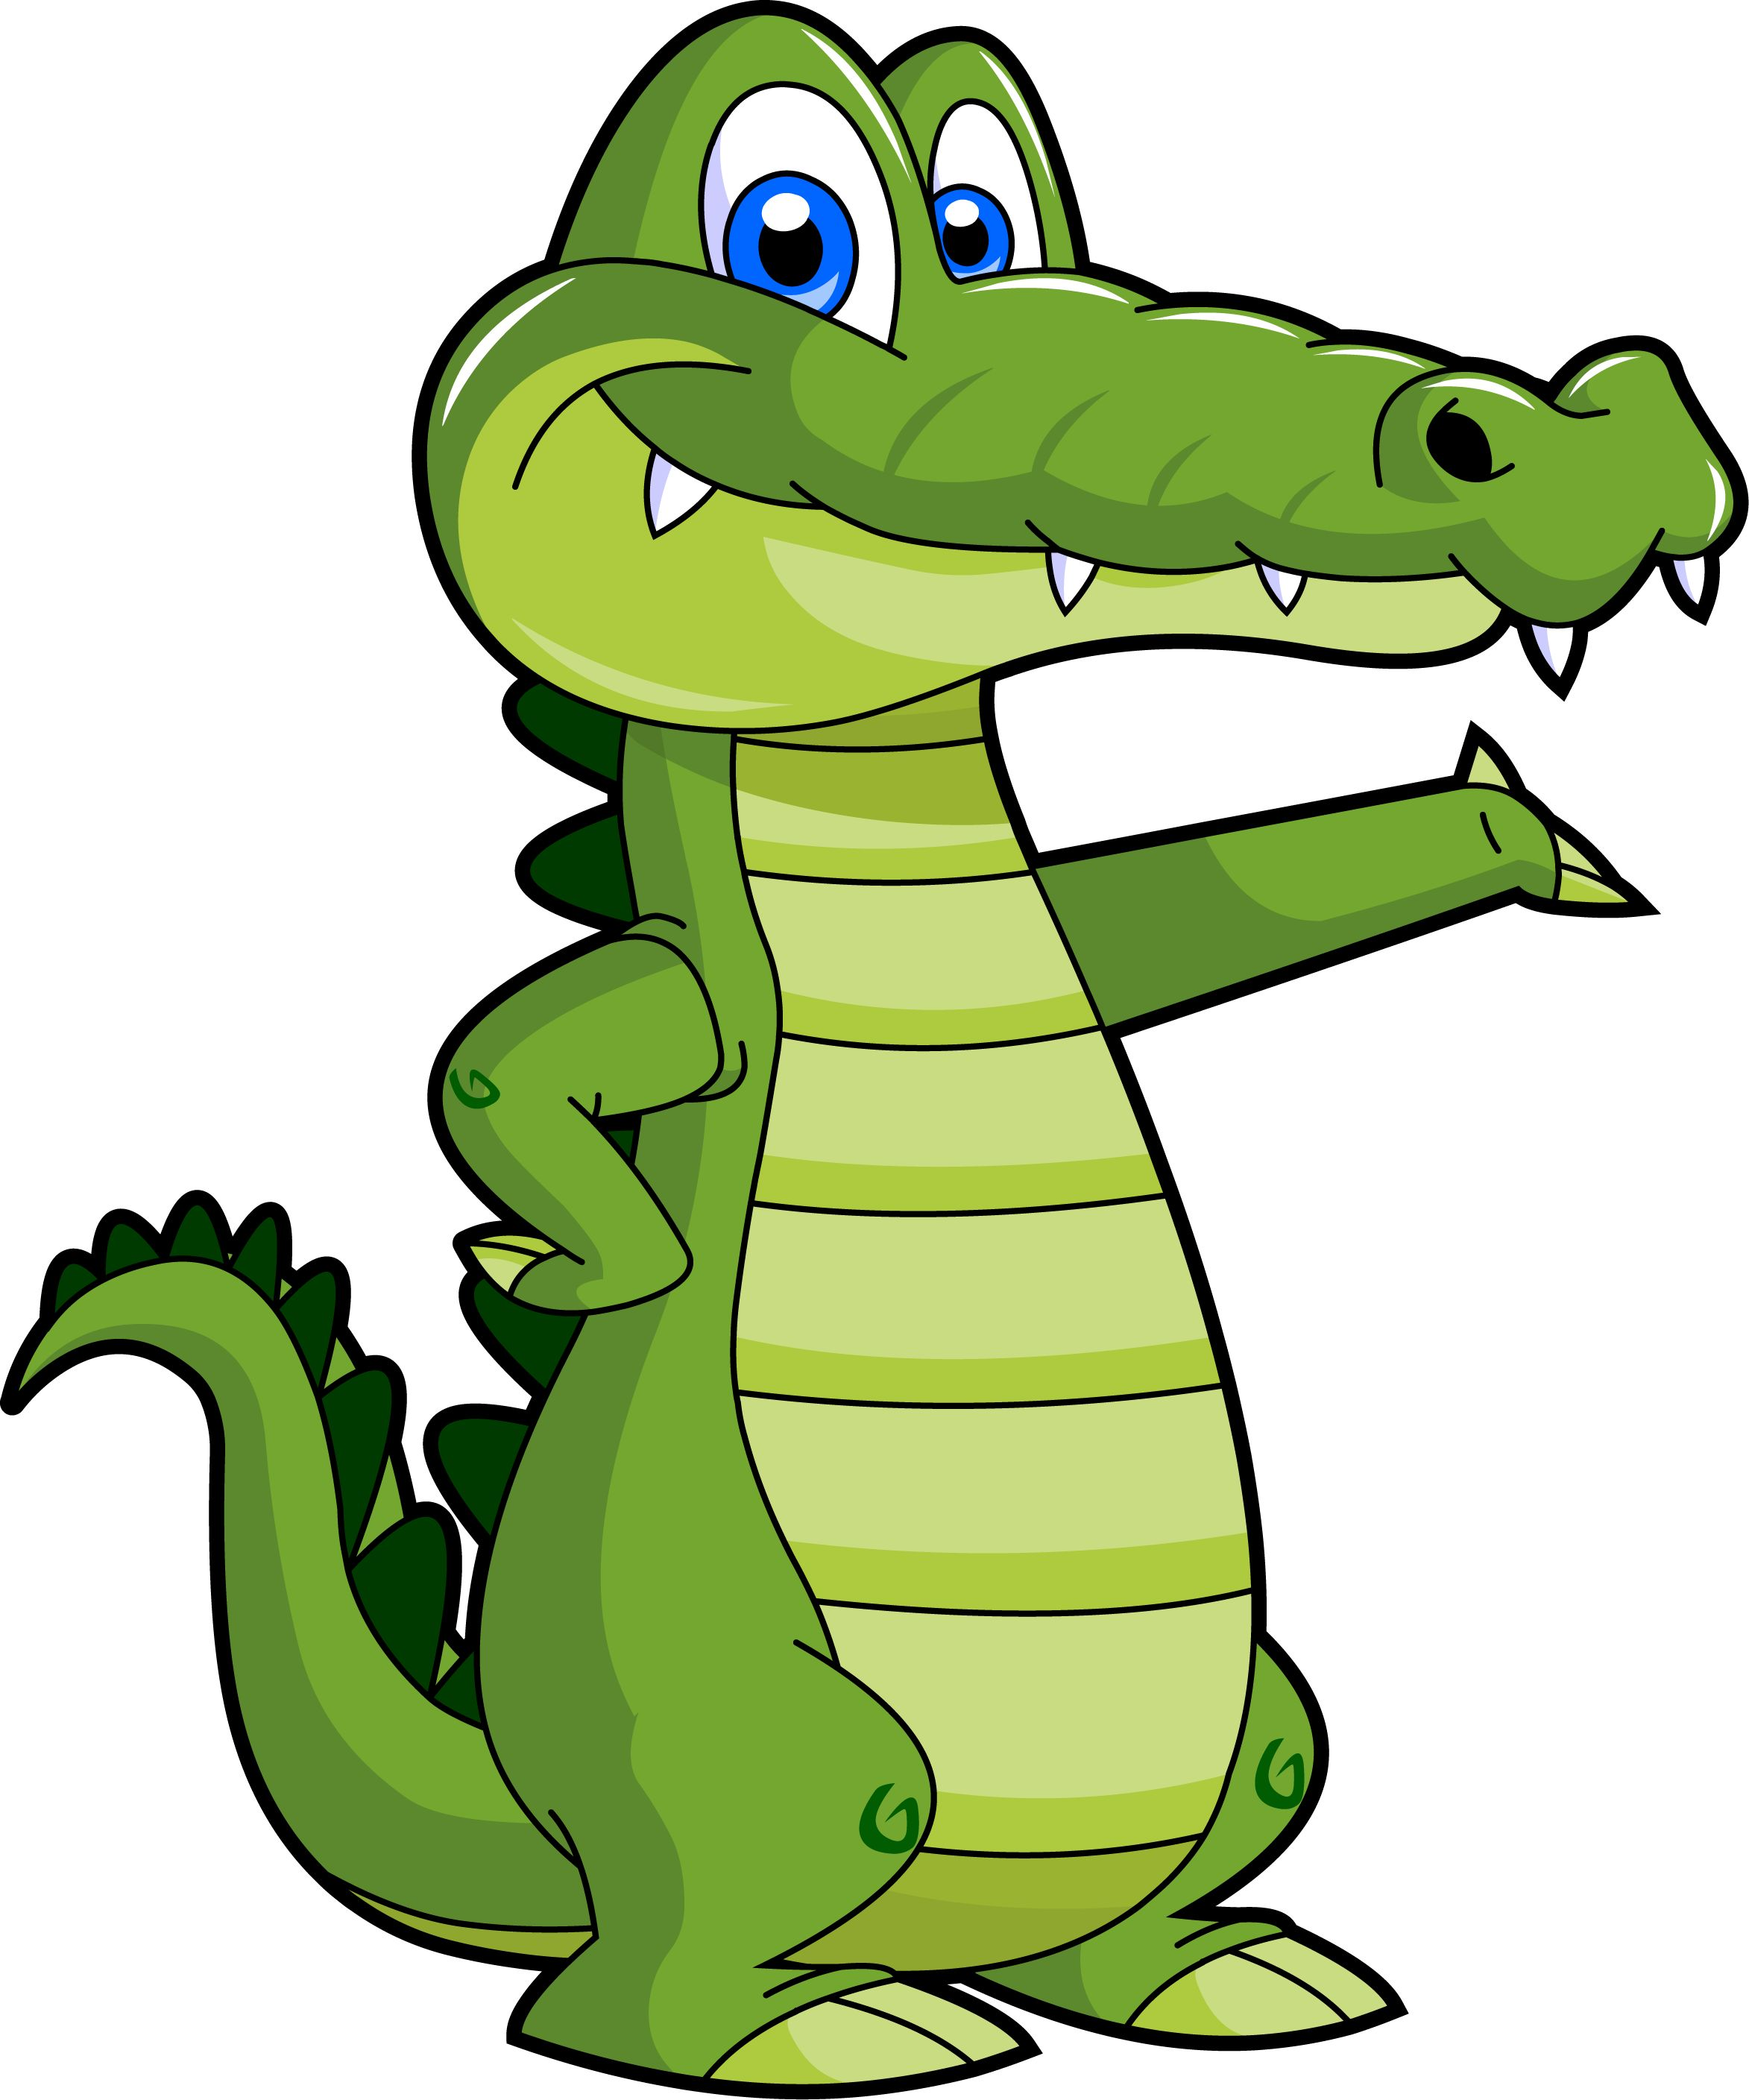 Cartoon Alligator Clipart - Cliparts.co - photo#1